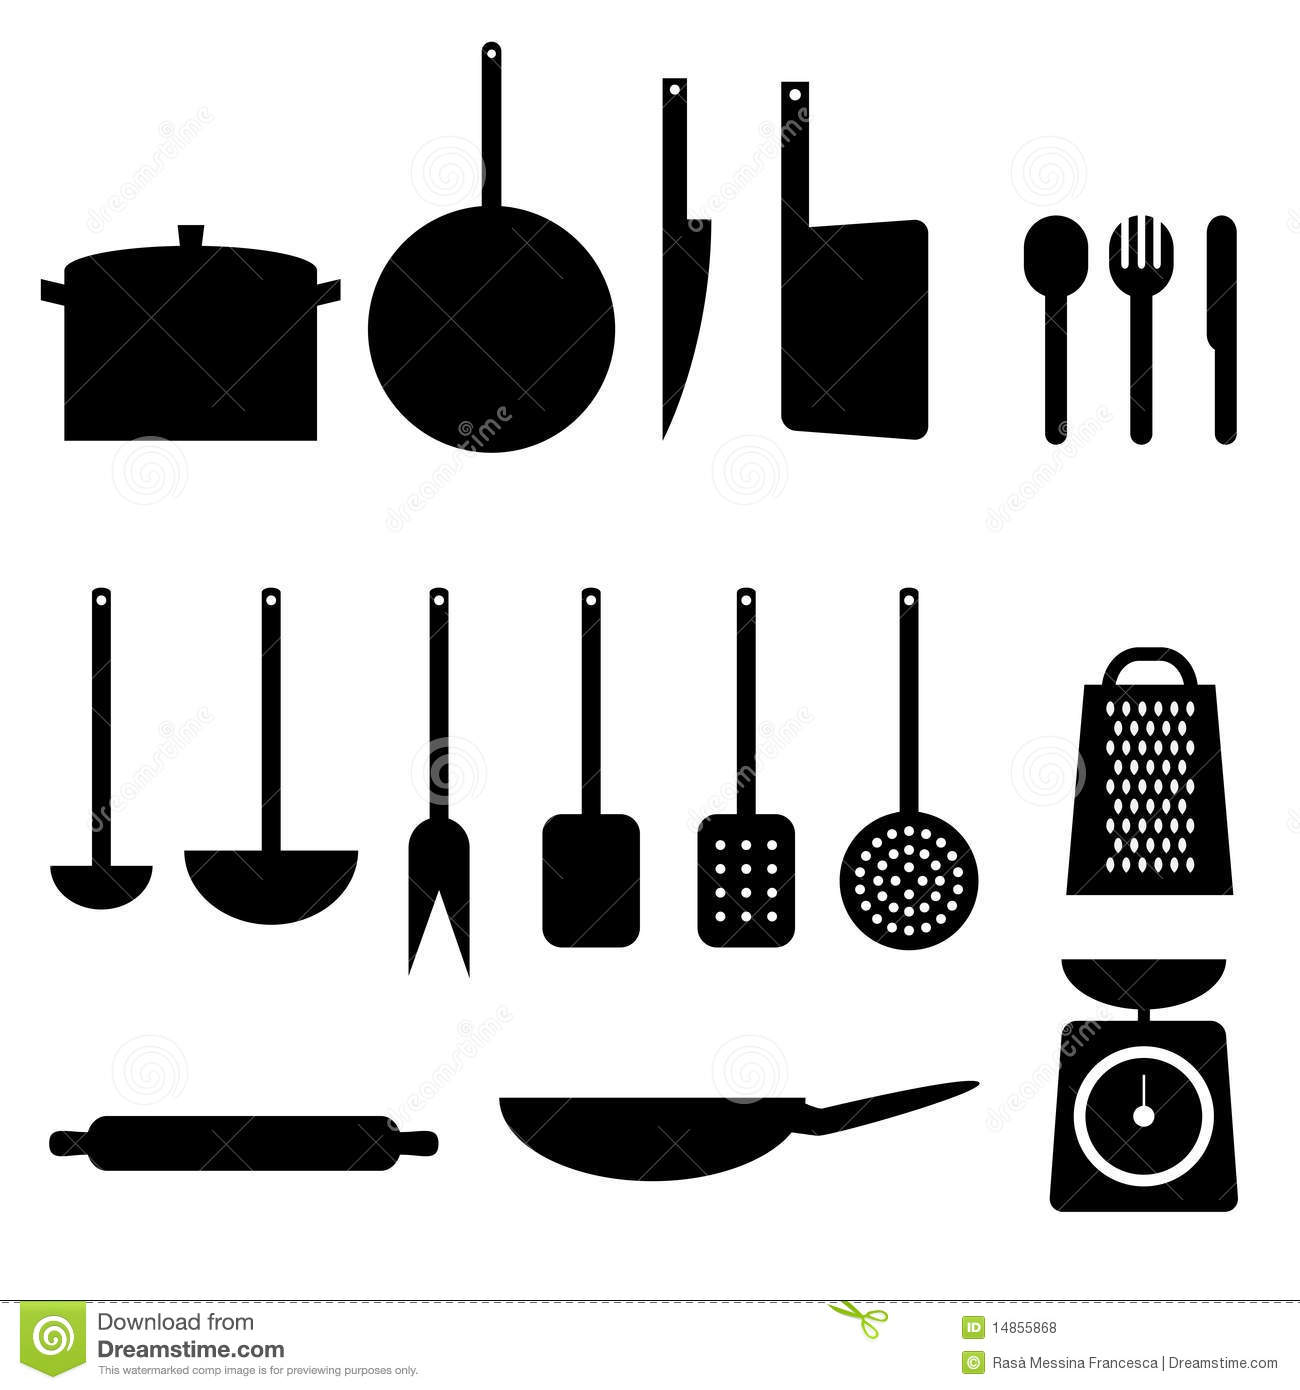 kitchen items royalty free stock photos - image: 14855868